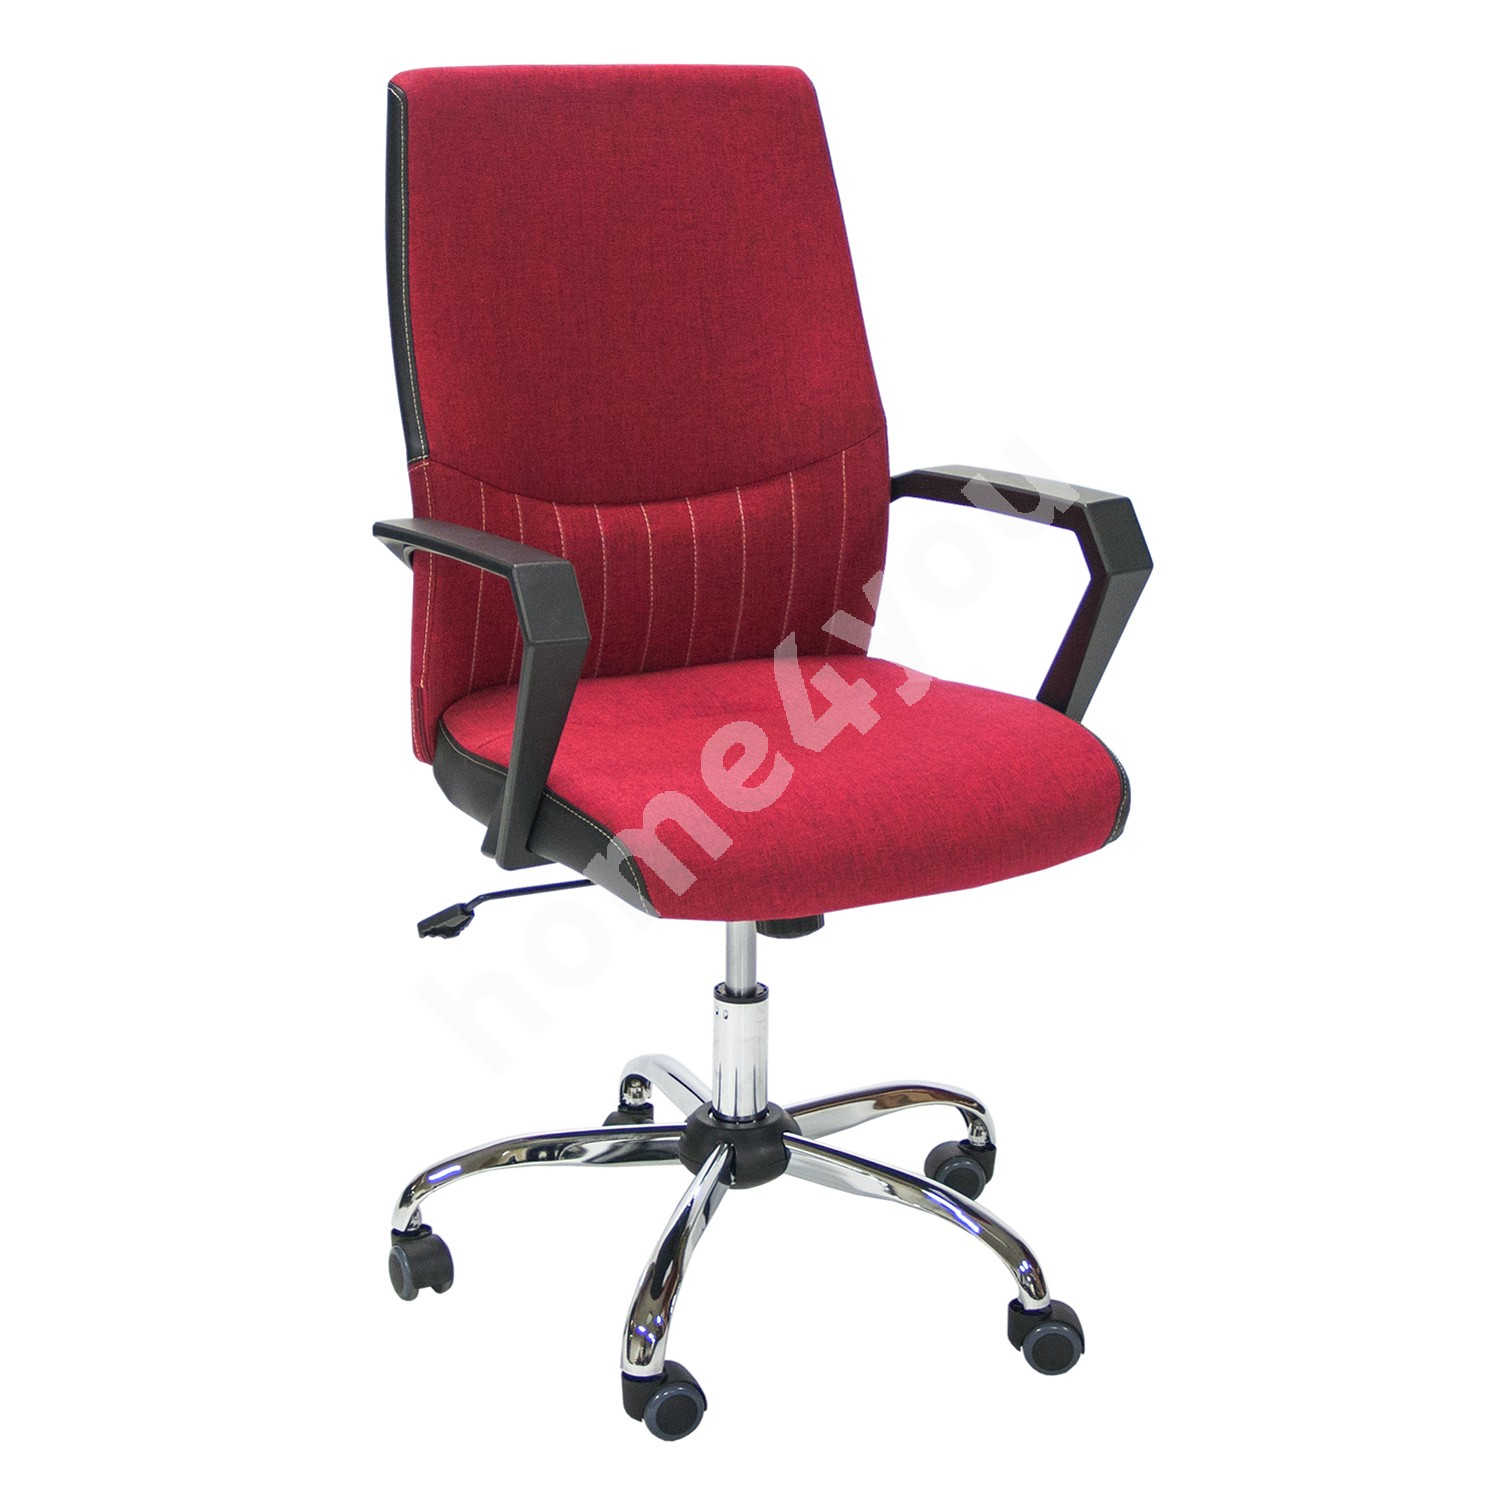 Task chair ANGELO 58x59x97-105cm, seat and back rest: fabric, color: red